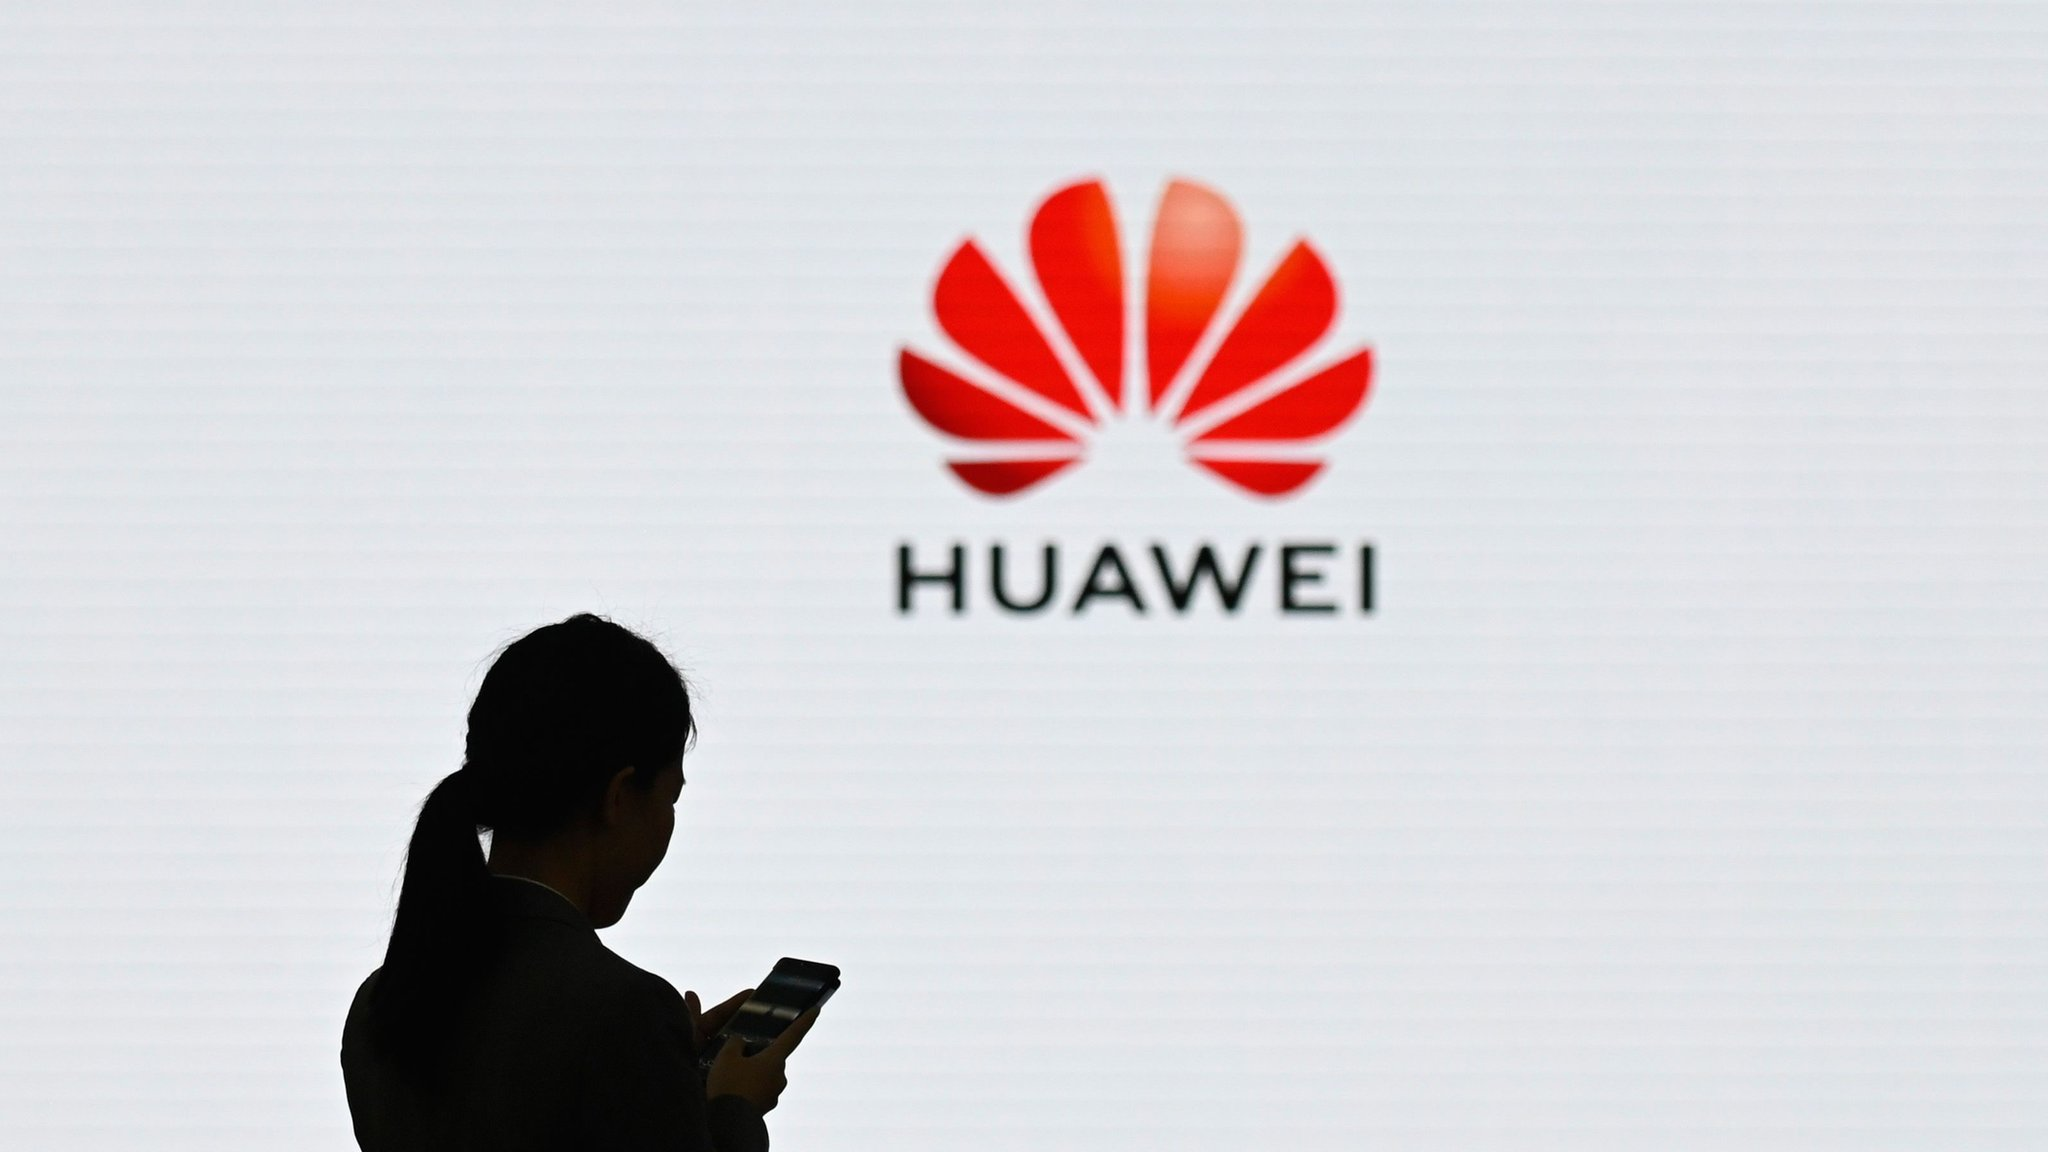 Huawei leak row: Government 'cannot exclude' criminal investigation